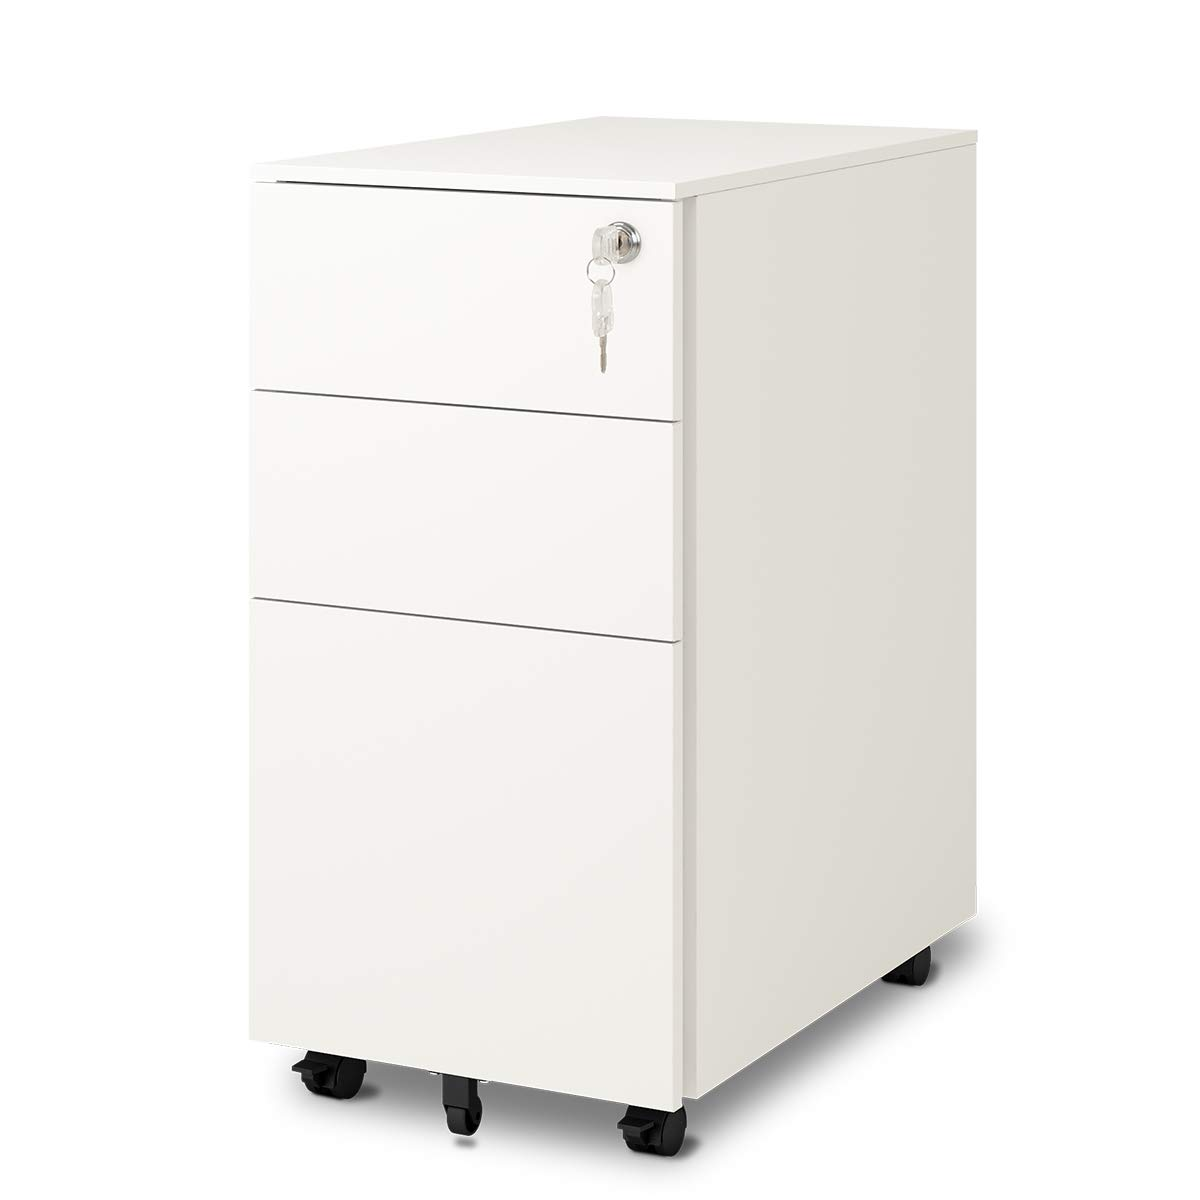 DEVAISE 3-Drawer Metal File Cabinet with Lock, Mobile Pedestal in Black